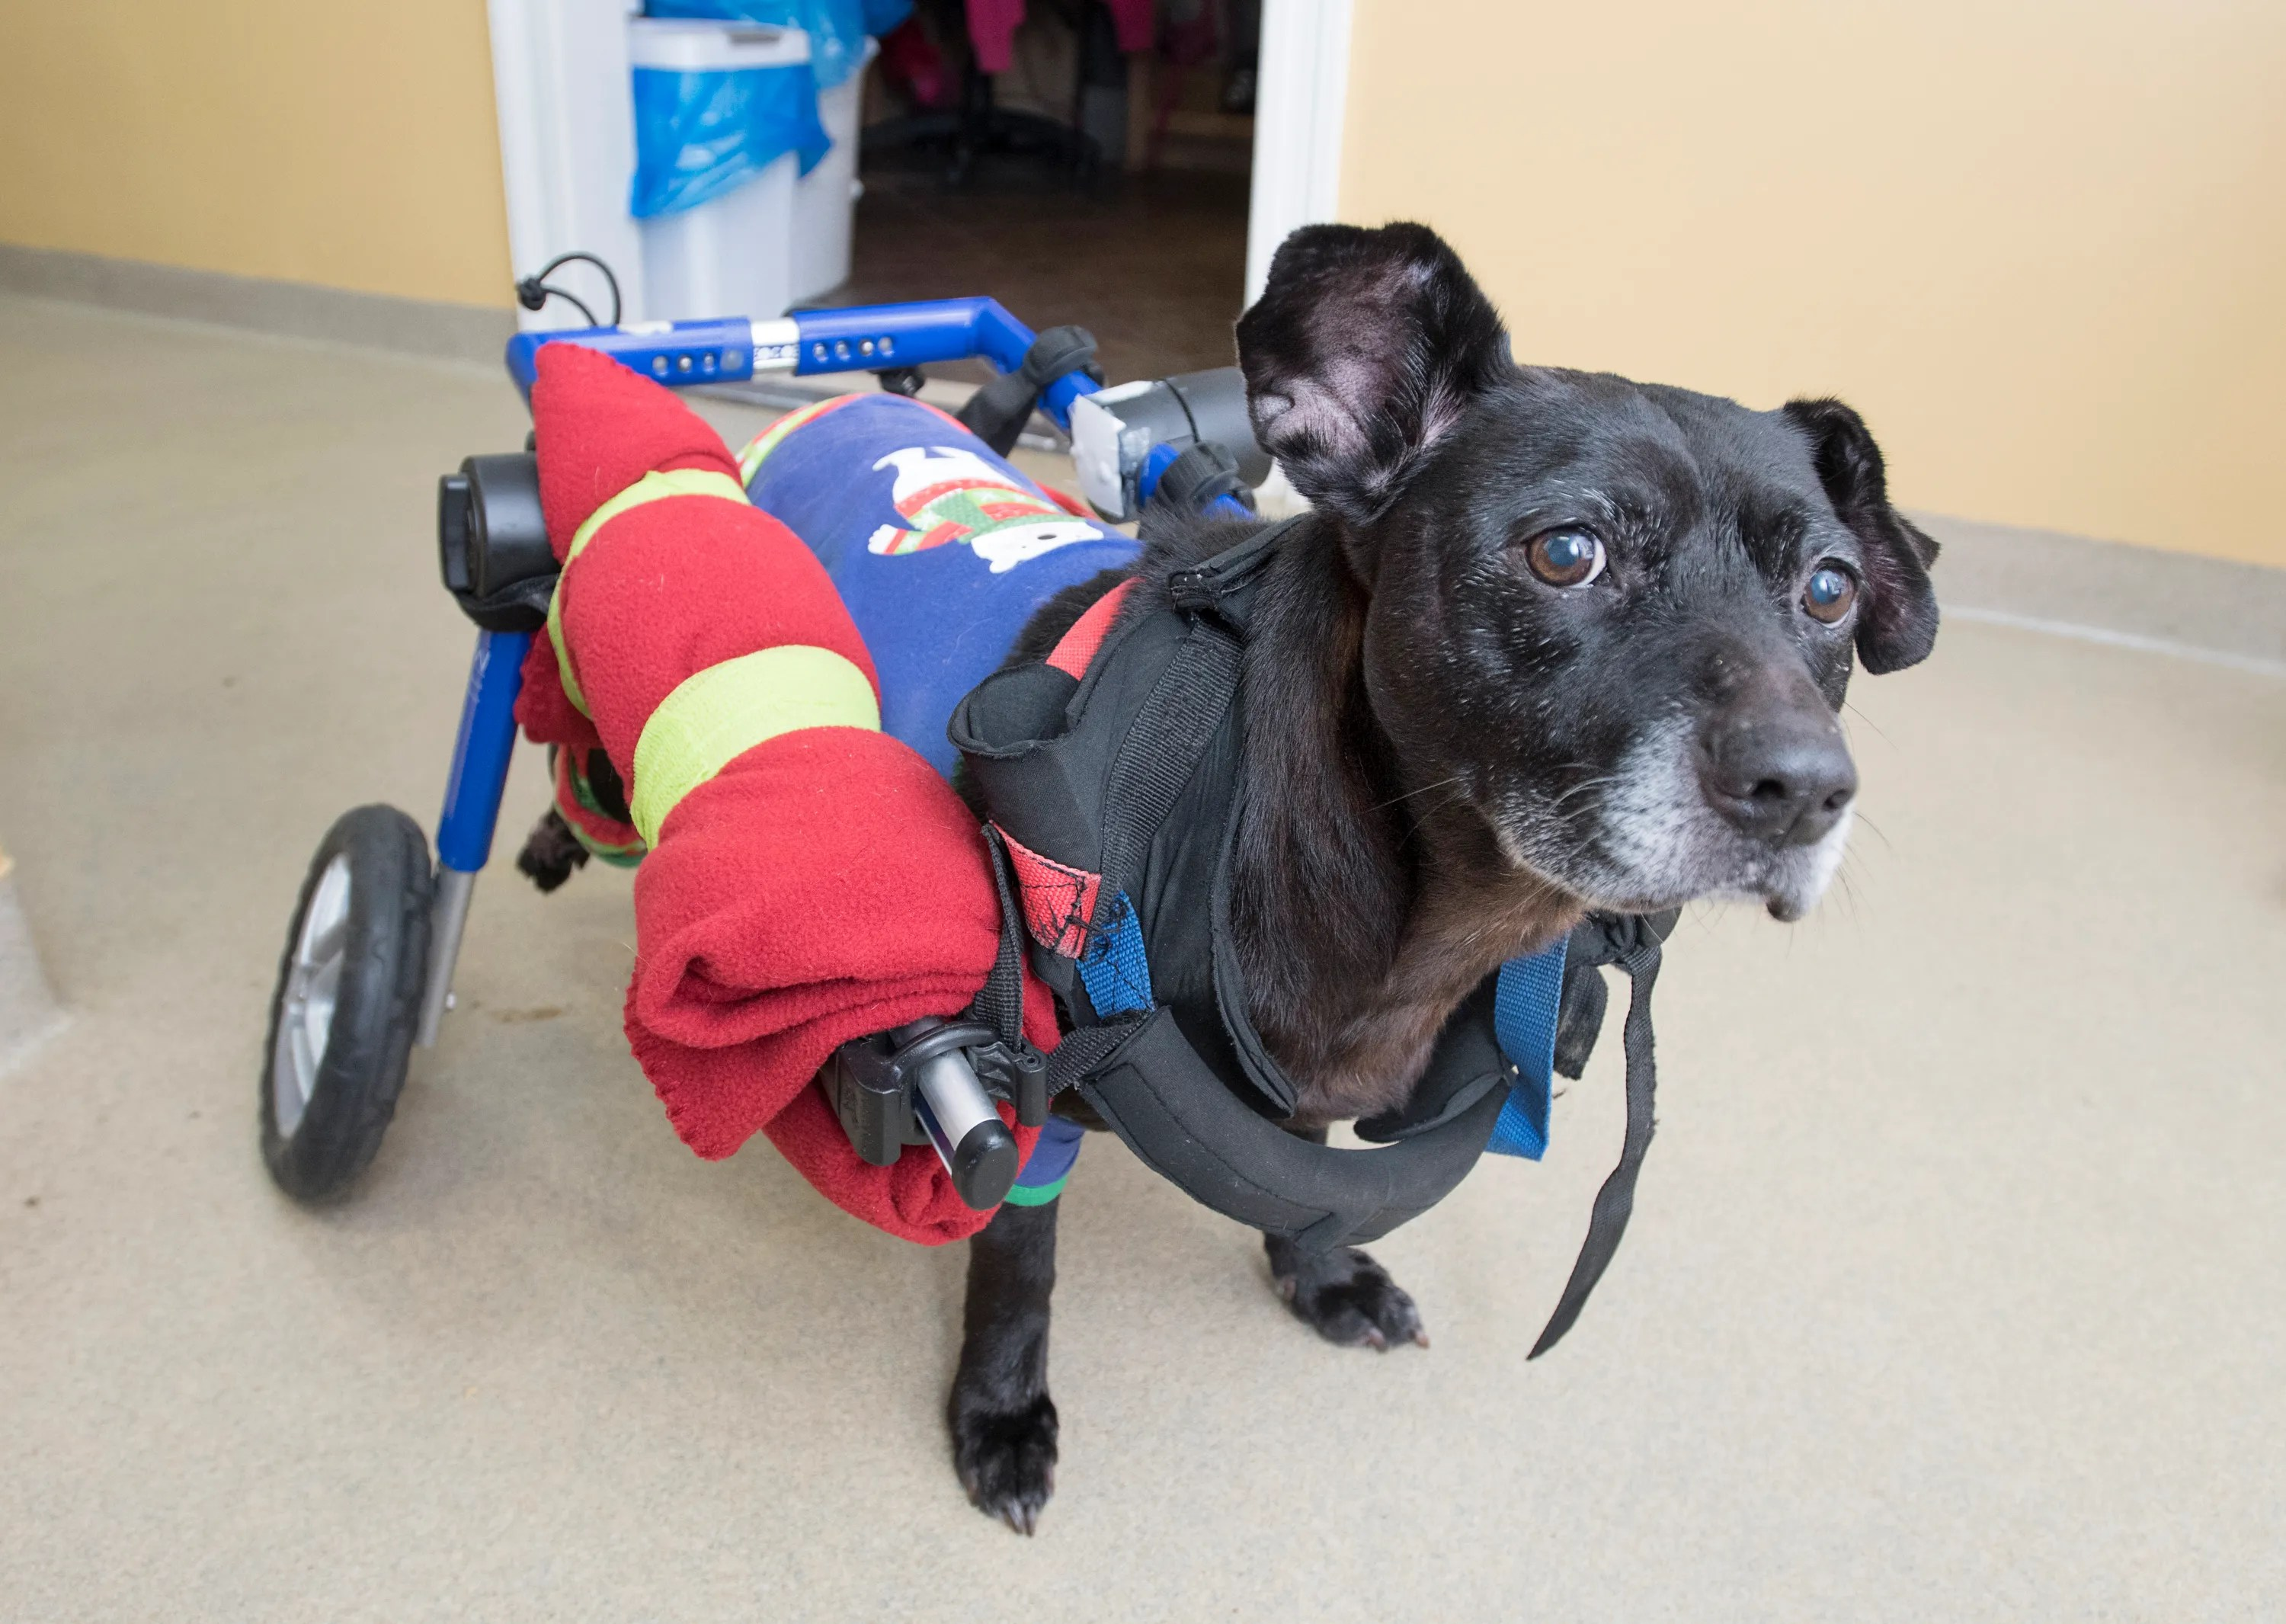 wheelchair dog black accent chairs under 100 pensacola in finds love home at safe harbor animal hosp hospital